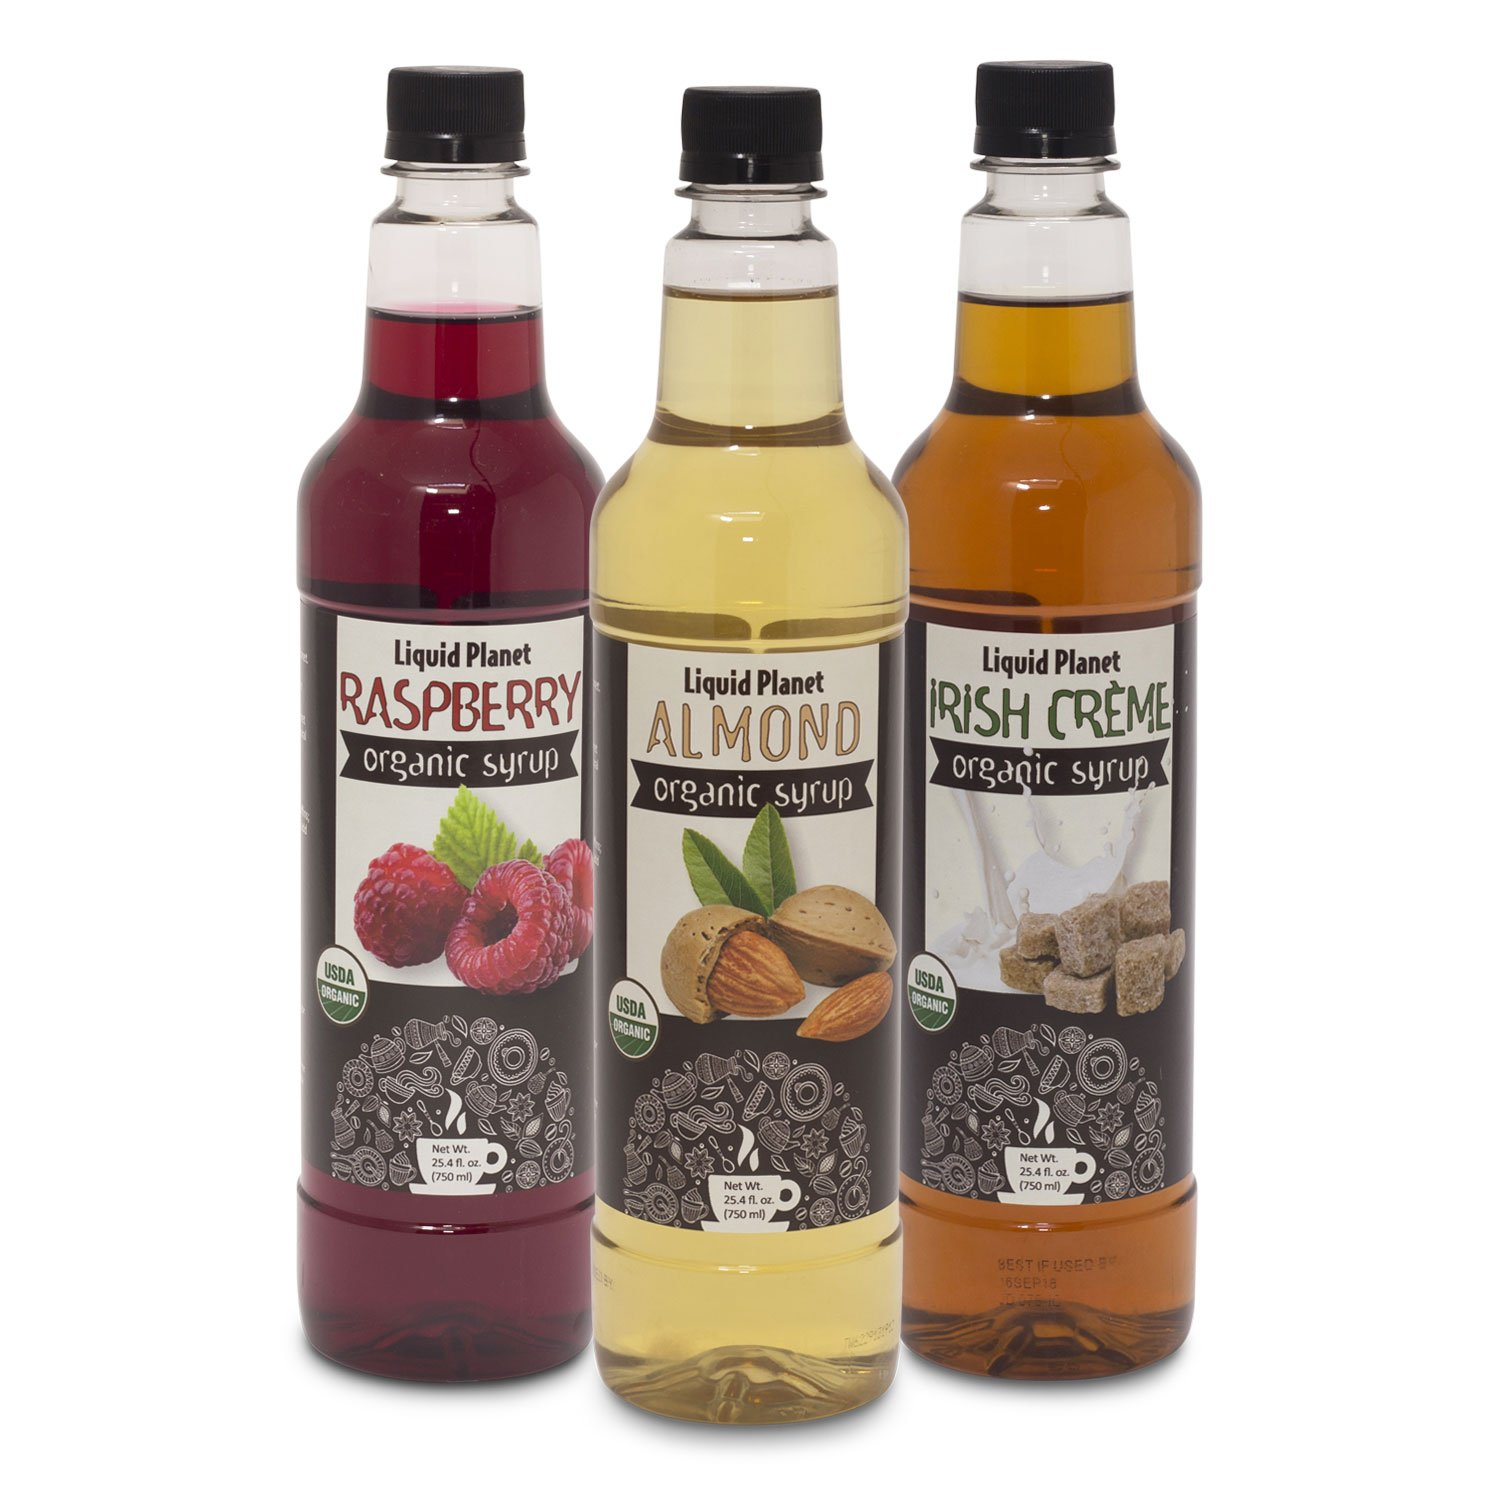 Organic Coffee Syrup 3 Pack- Raspberry, Almond, Irish Creme 76.2 fluid ounces, HFCS Free, by Liquid Planet